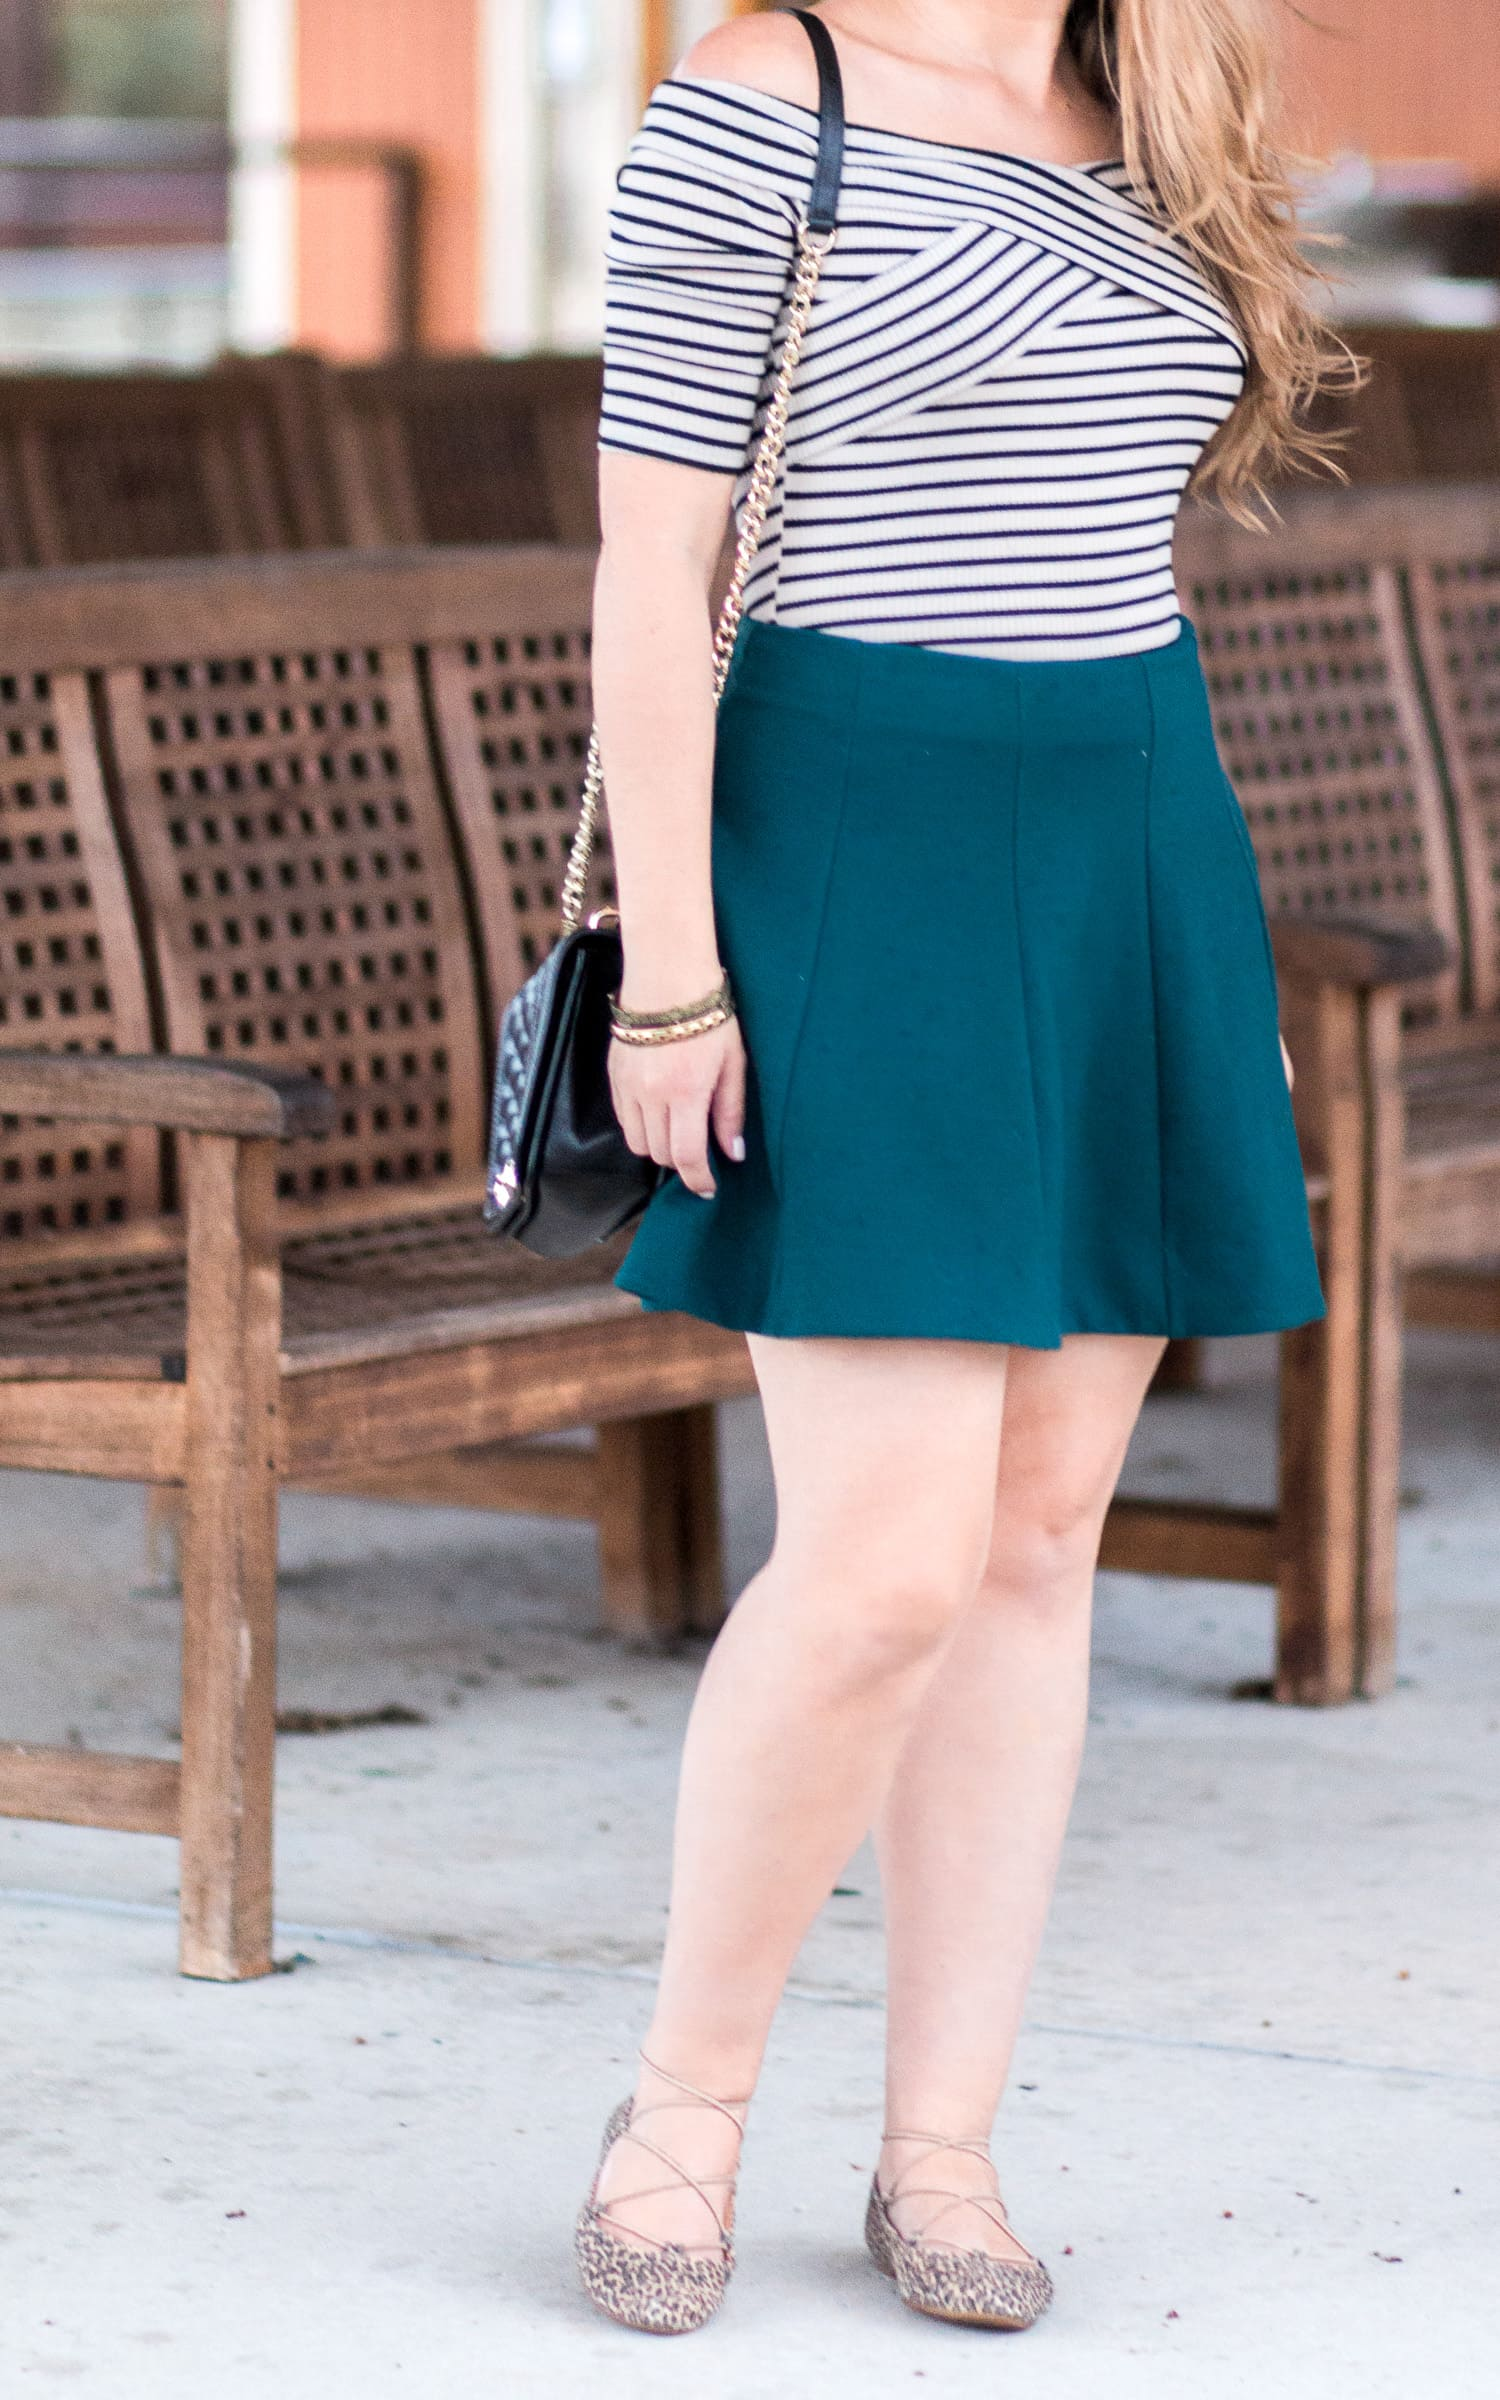 Rebecca Minkoff black and gold Love crossbody bag, antiqued gold bracelets, hunter green skater skirt, and Lucky Brand Aviee leopard print lace-up flats